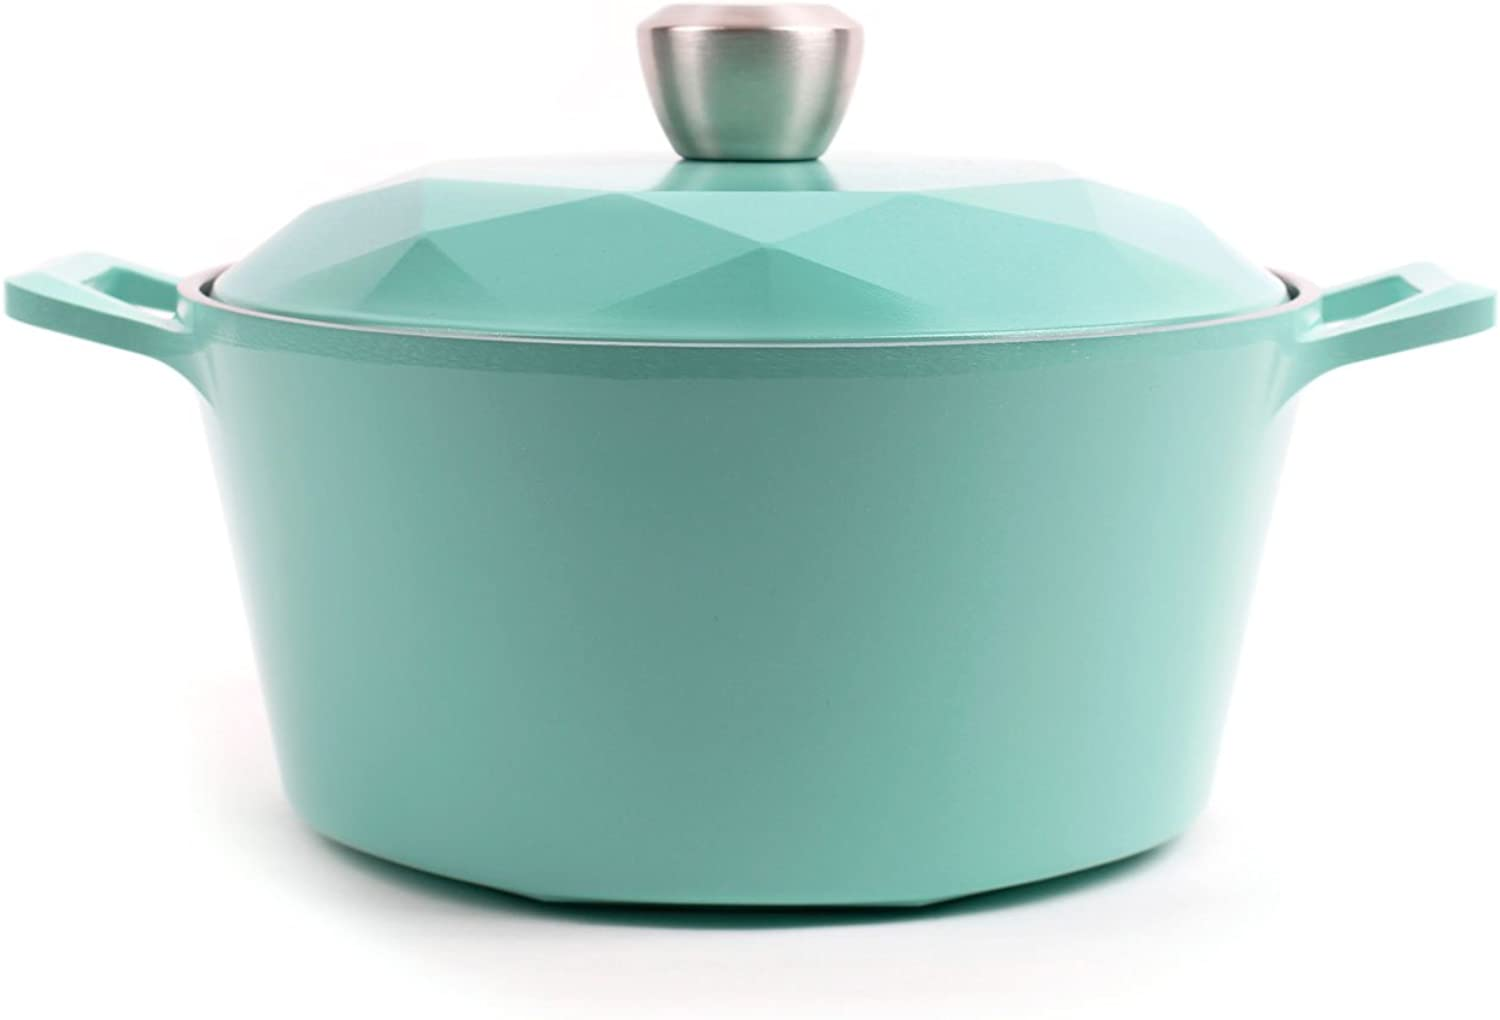 Neoflam Carat 4QT Ceramic Nonstick Stockpot with Oven-Safe Lid in Fresh Green